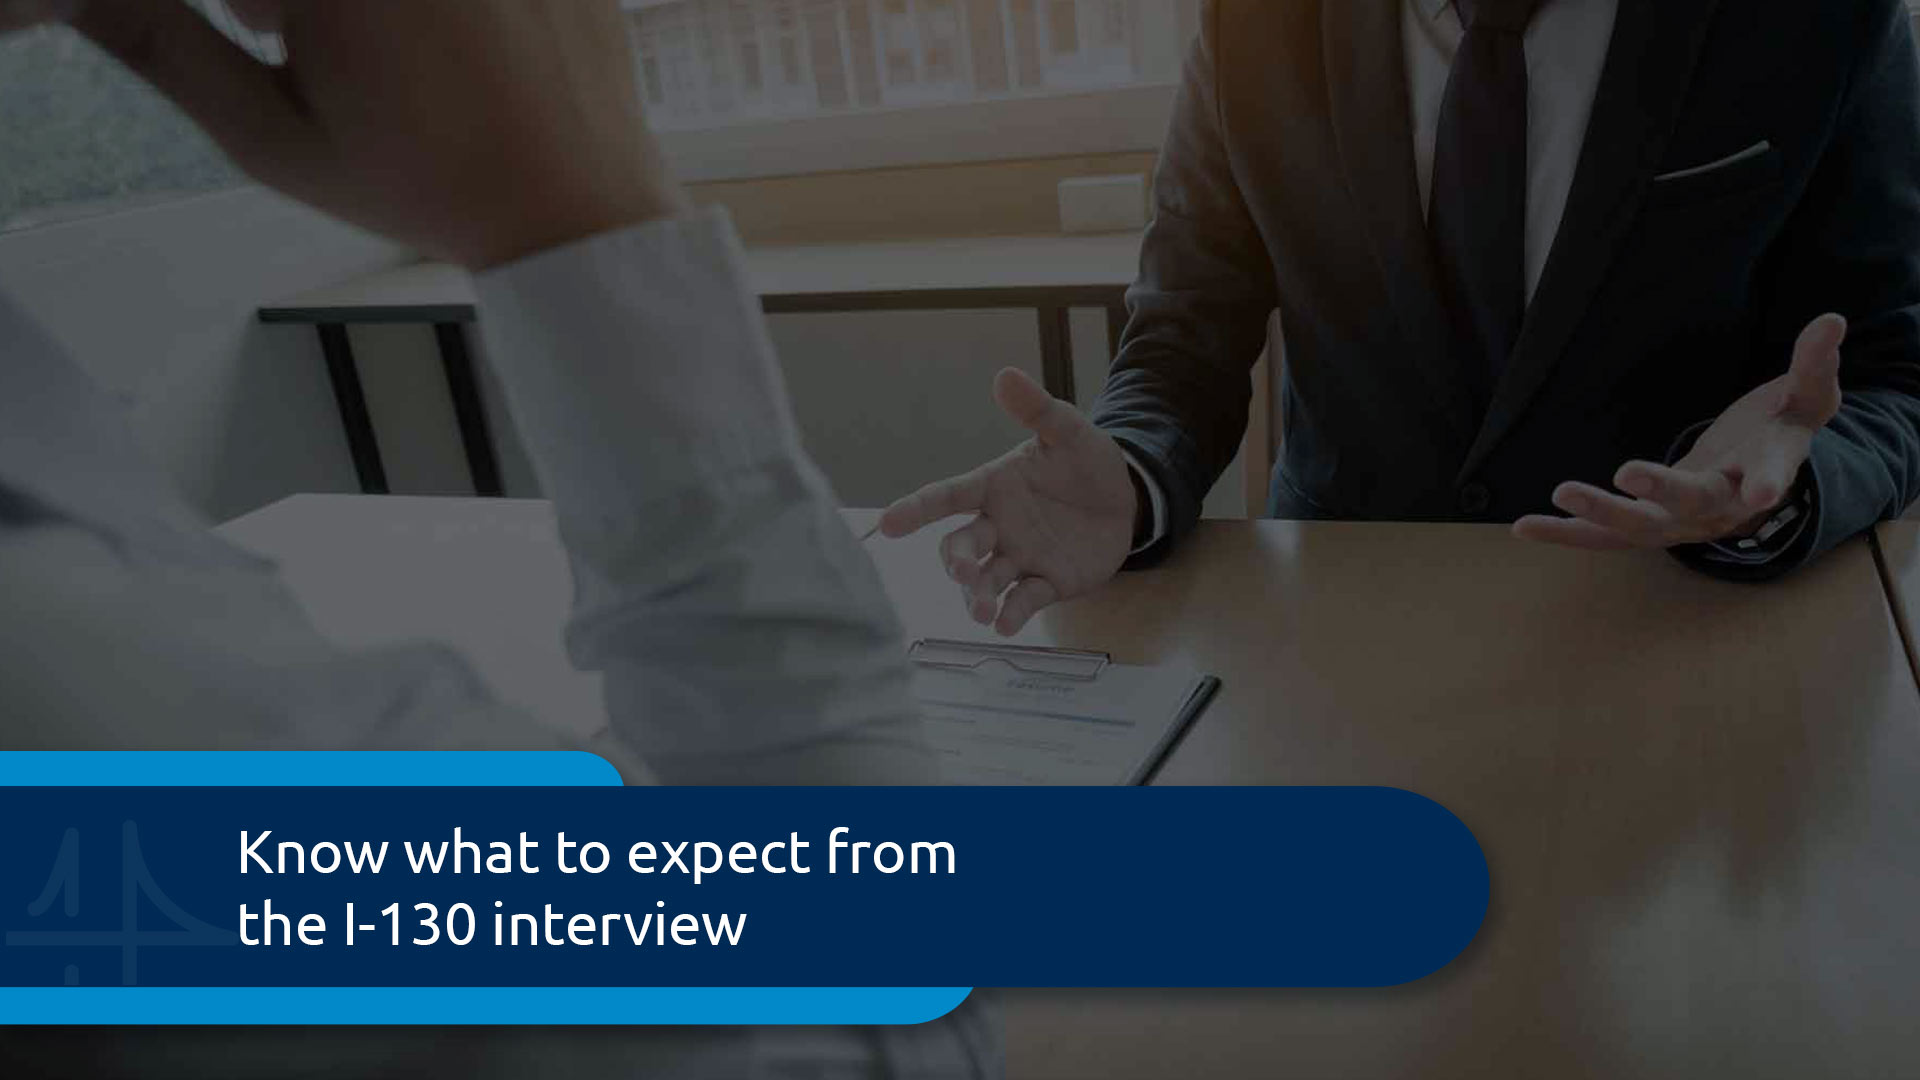 How to Prepare for the I-130 Interview